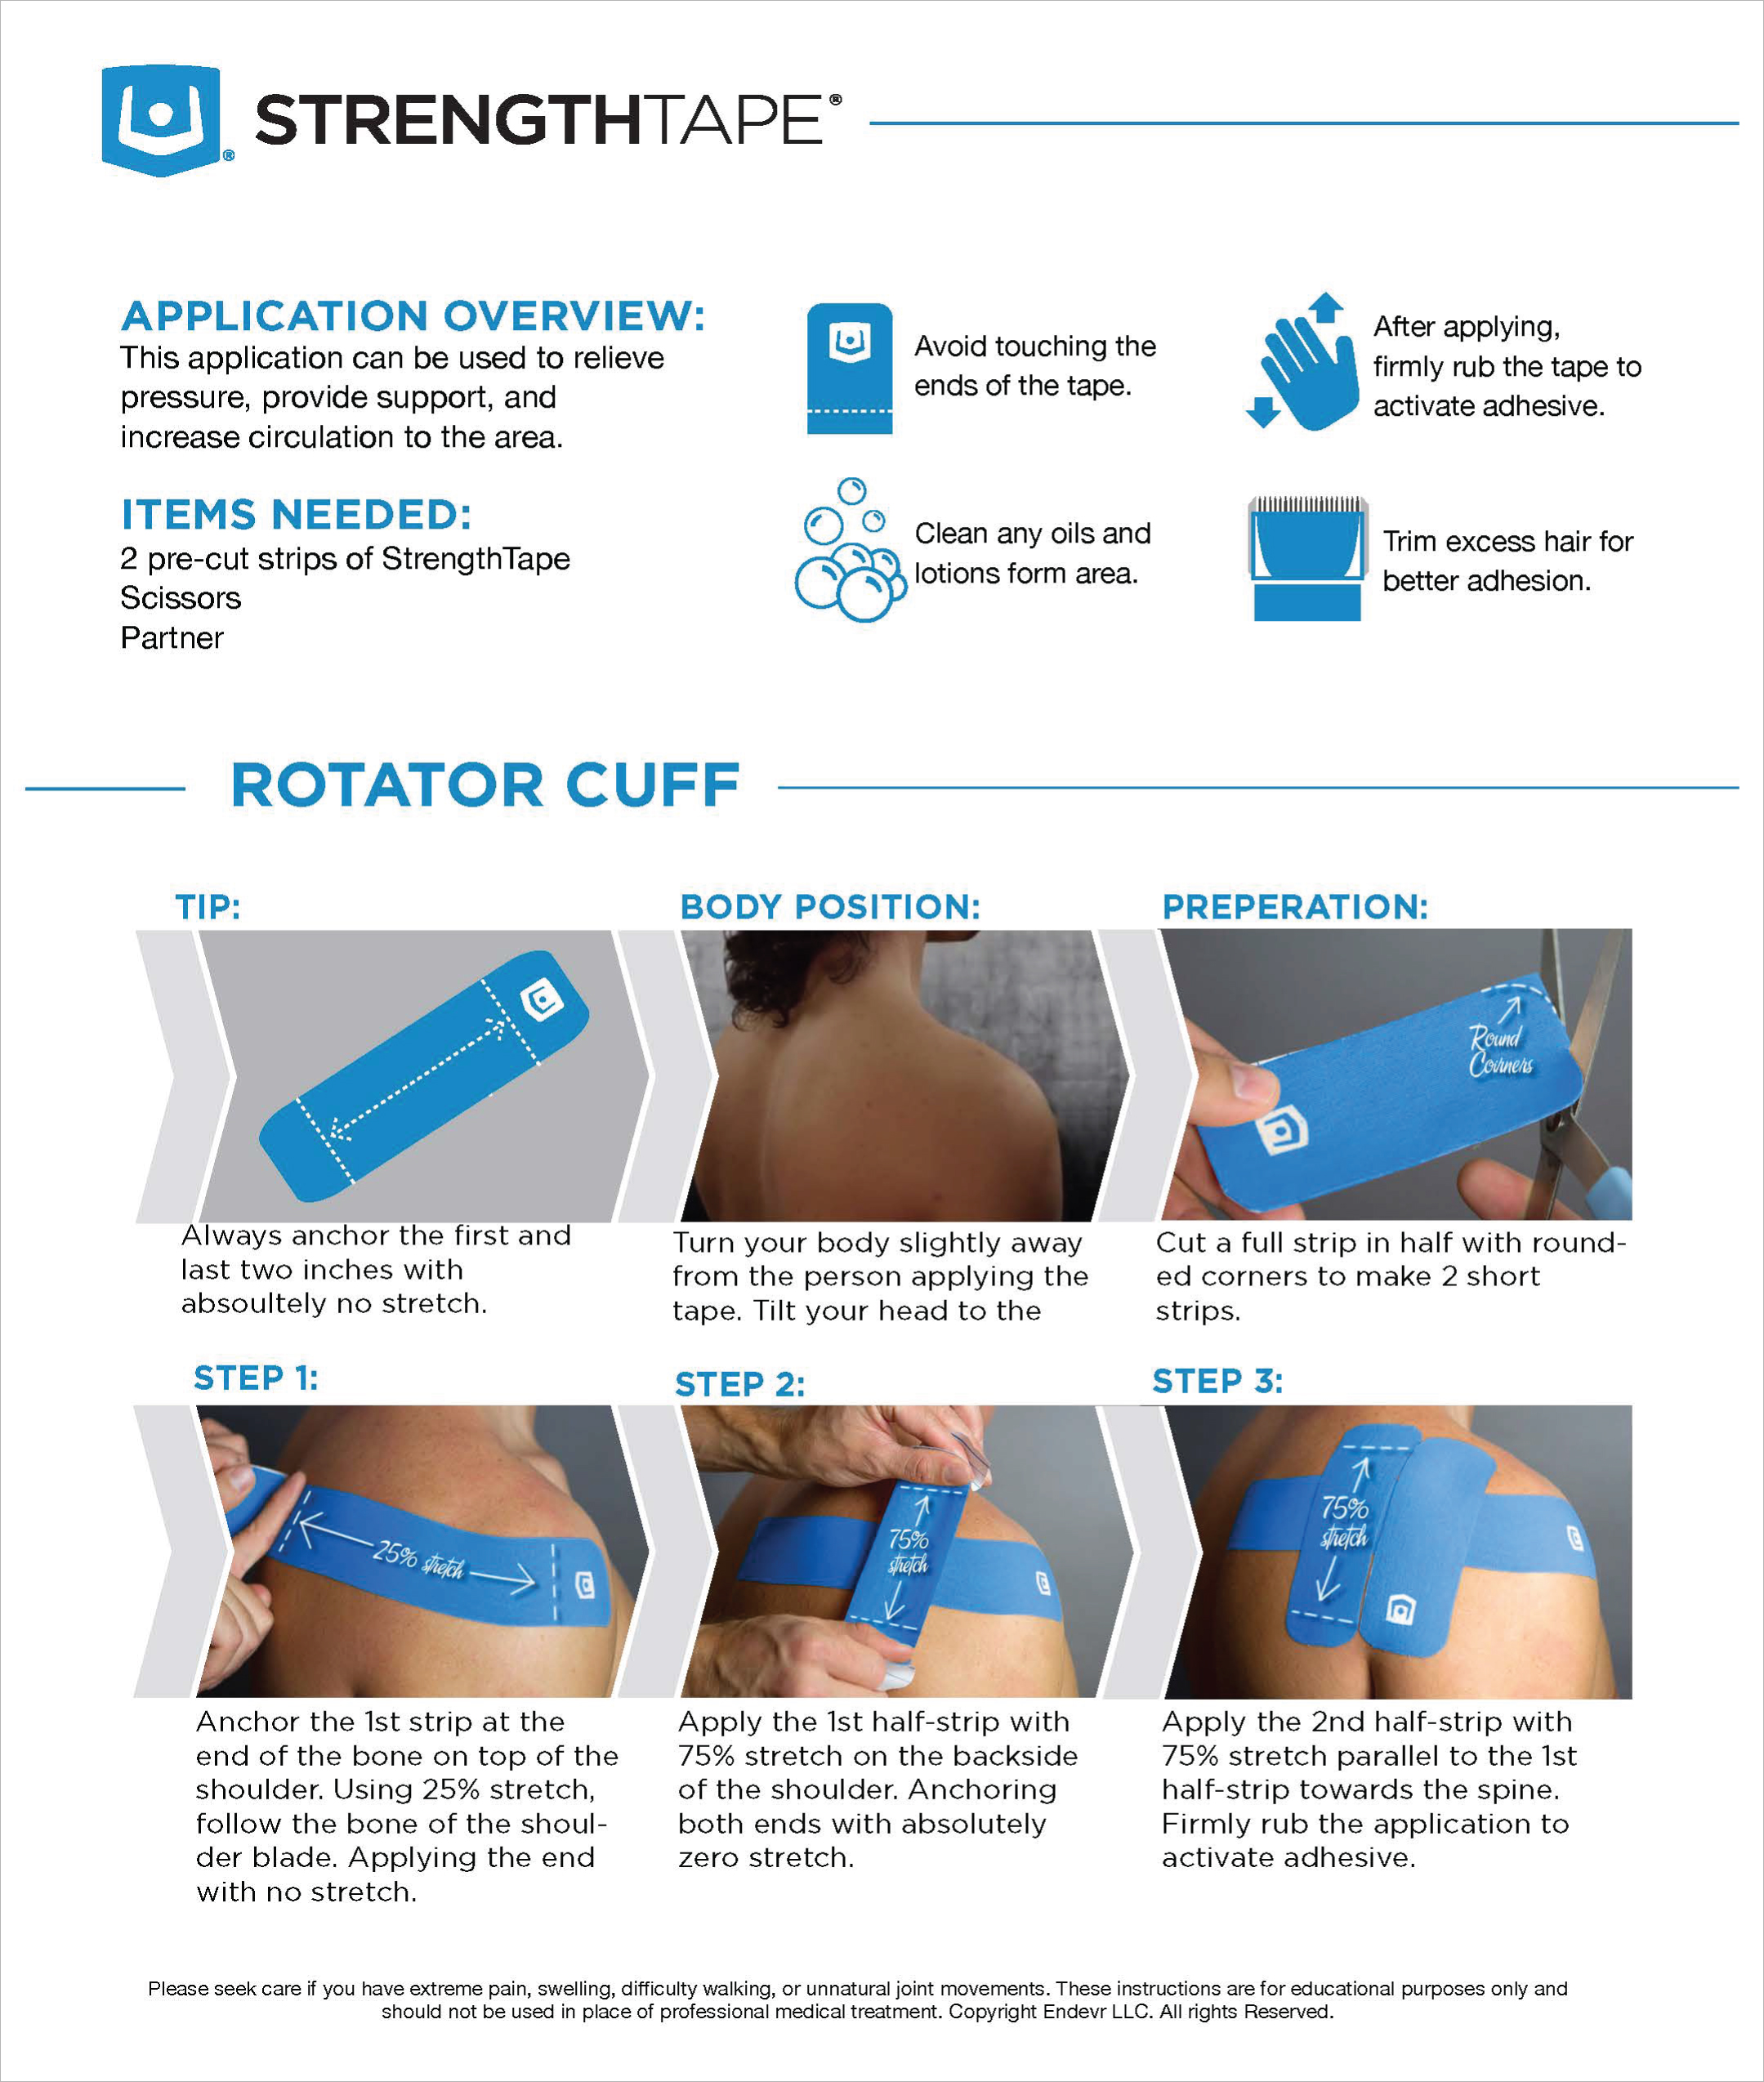 StrengthTape Rotator Cuff Taping Instructions